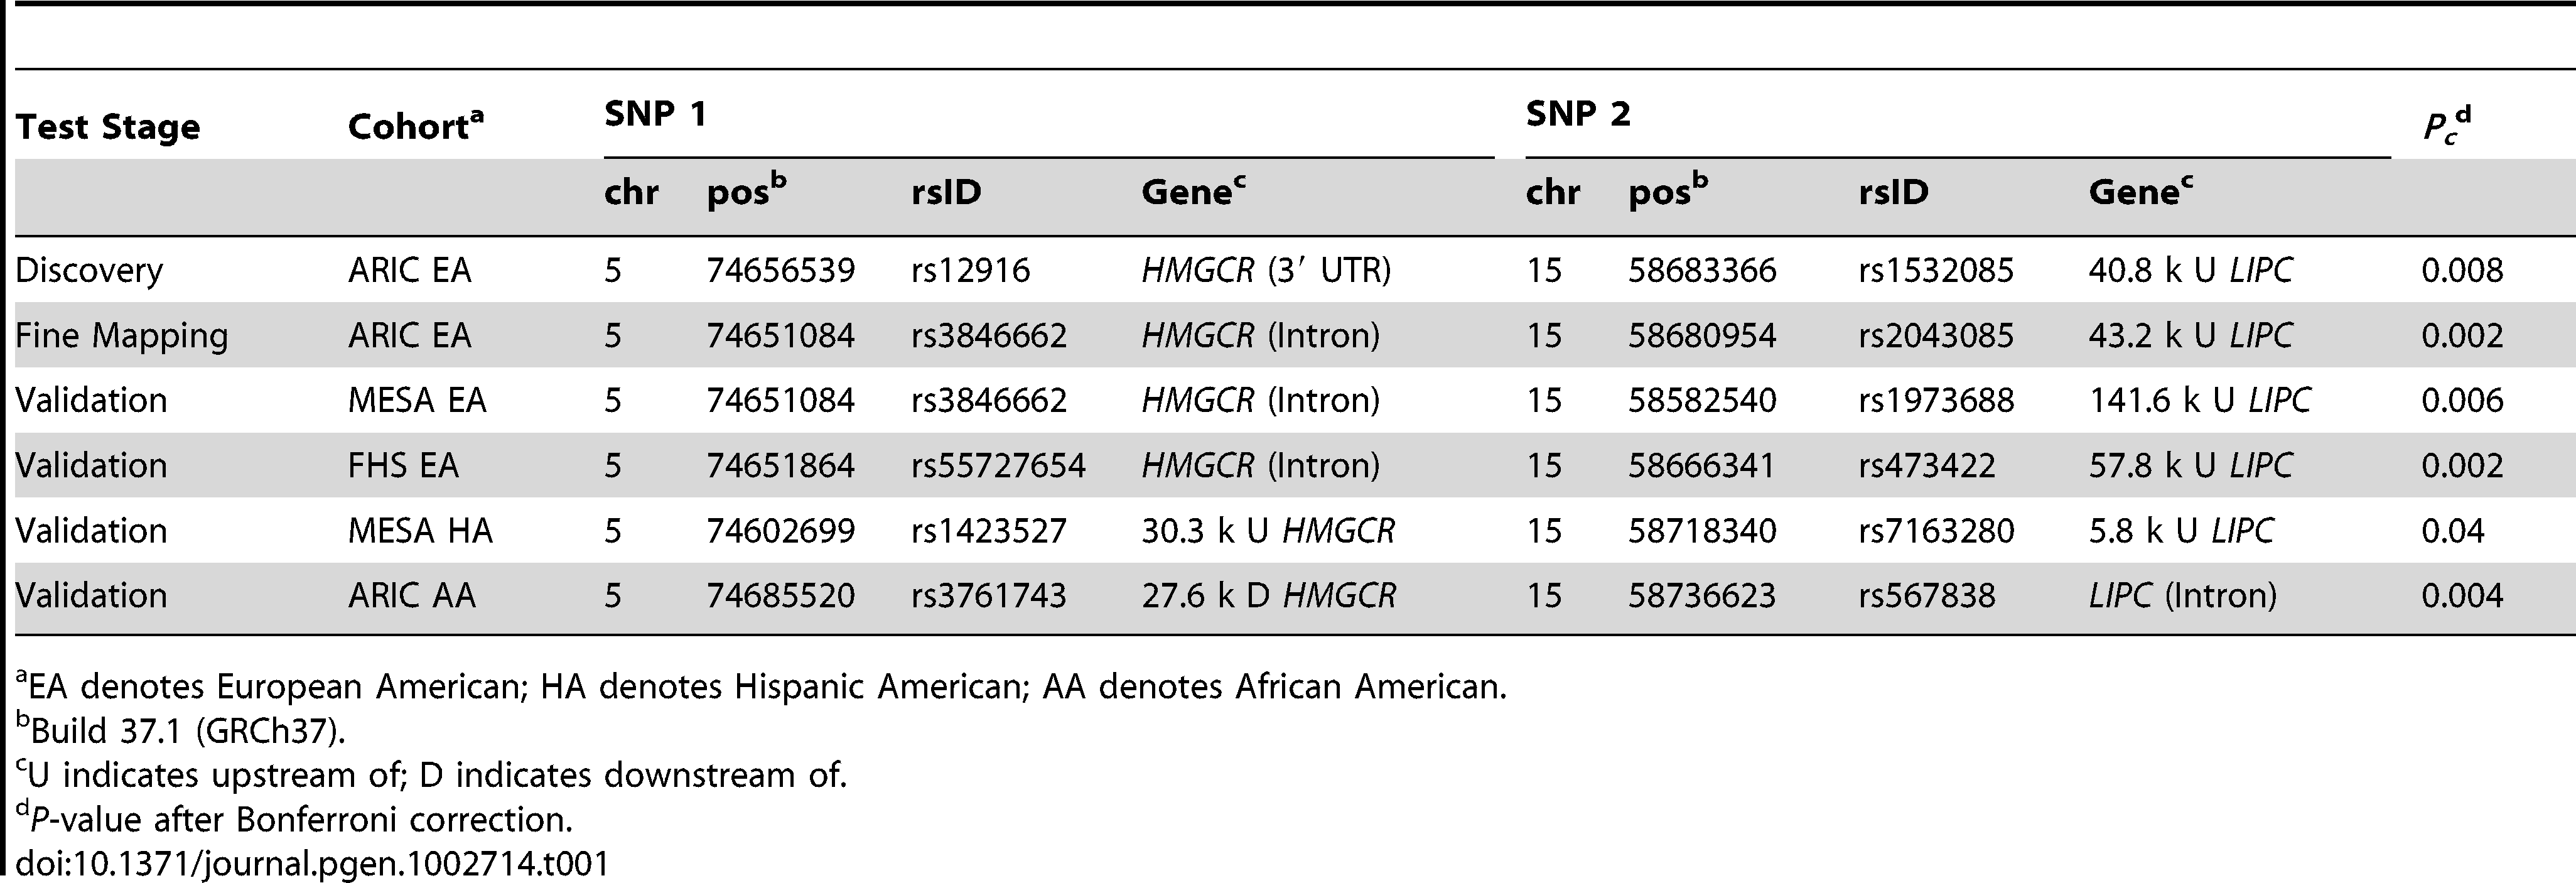 Significant interactions on HDL-C in multi-ethnic cohorts.